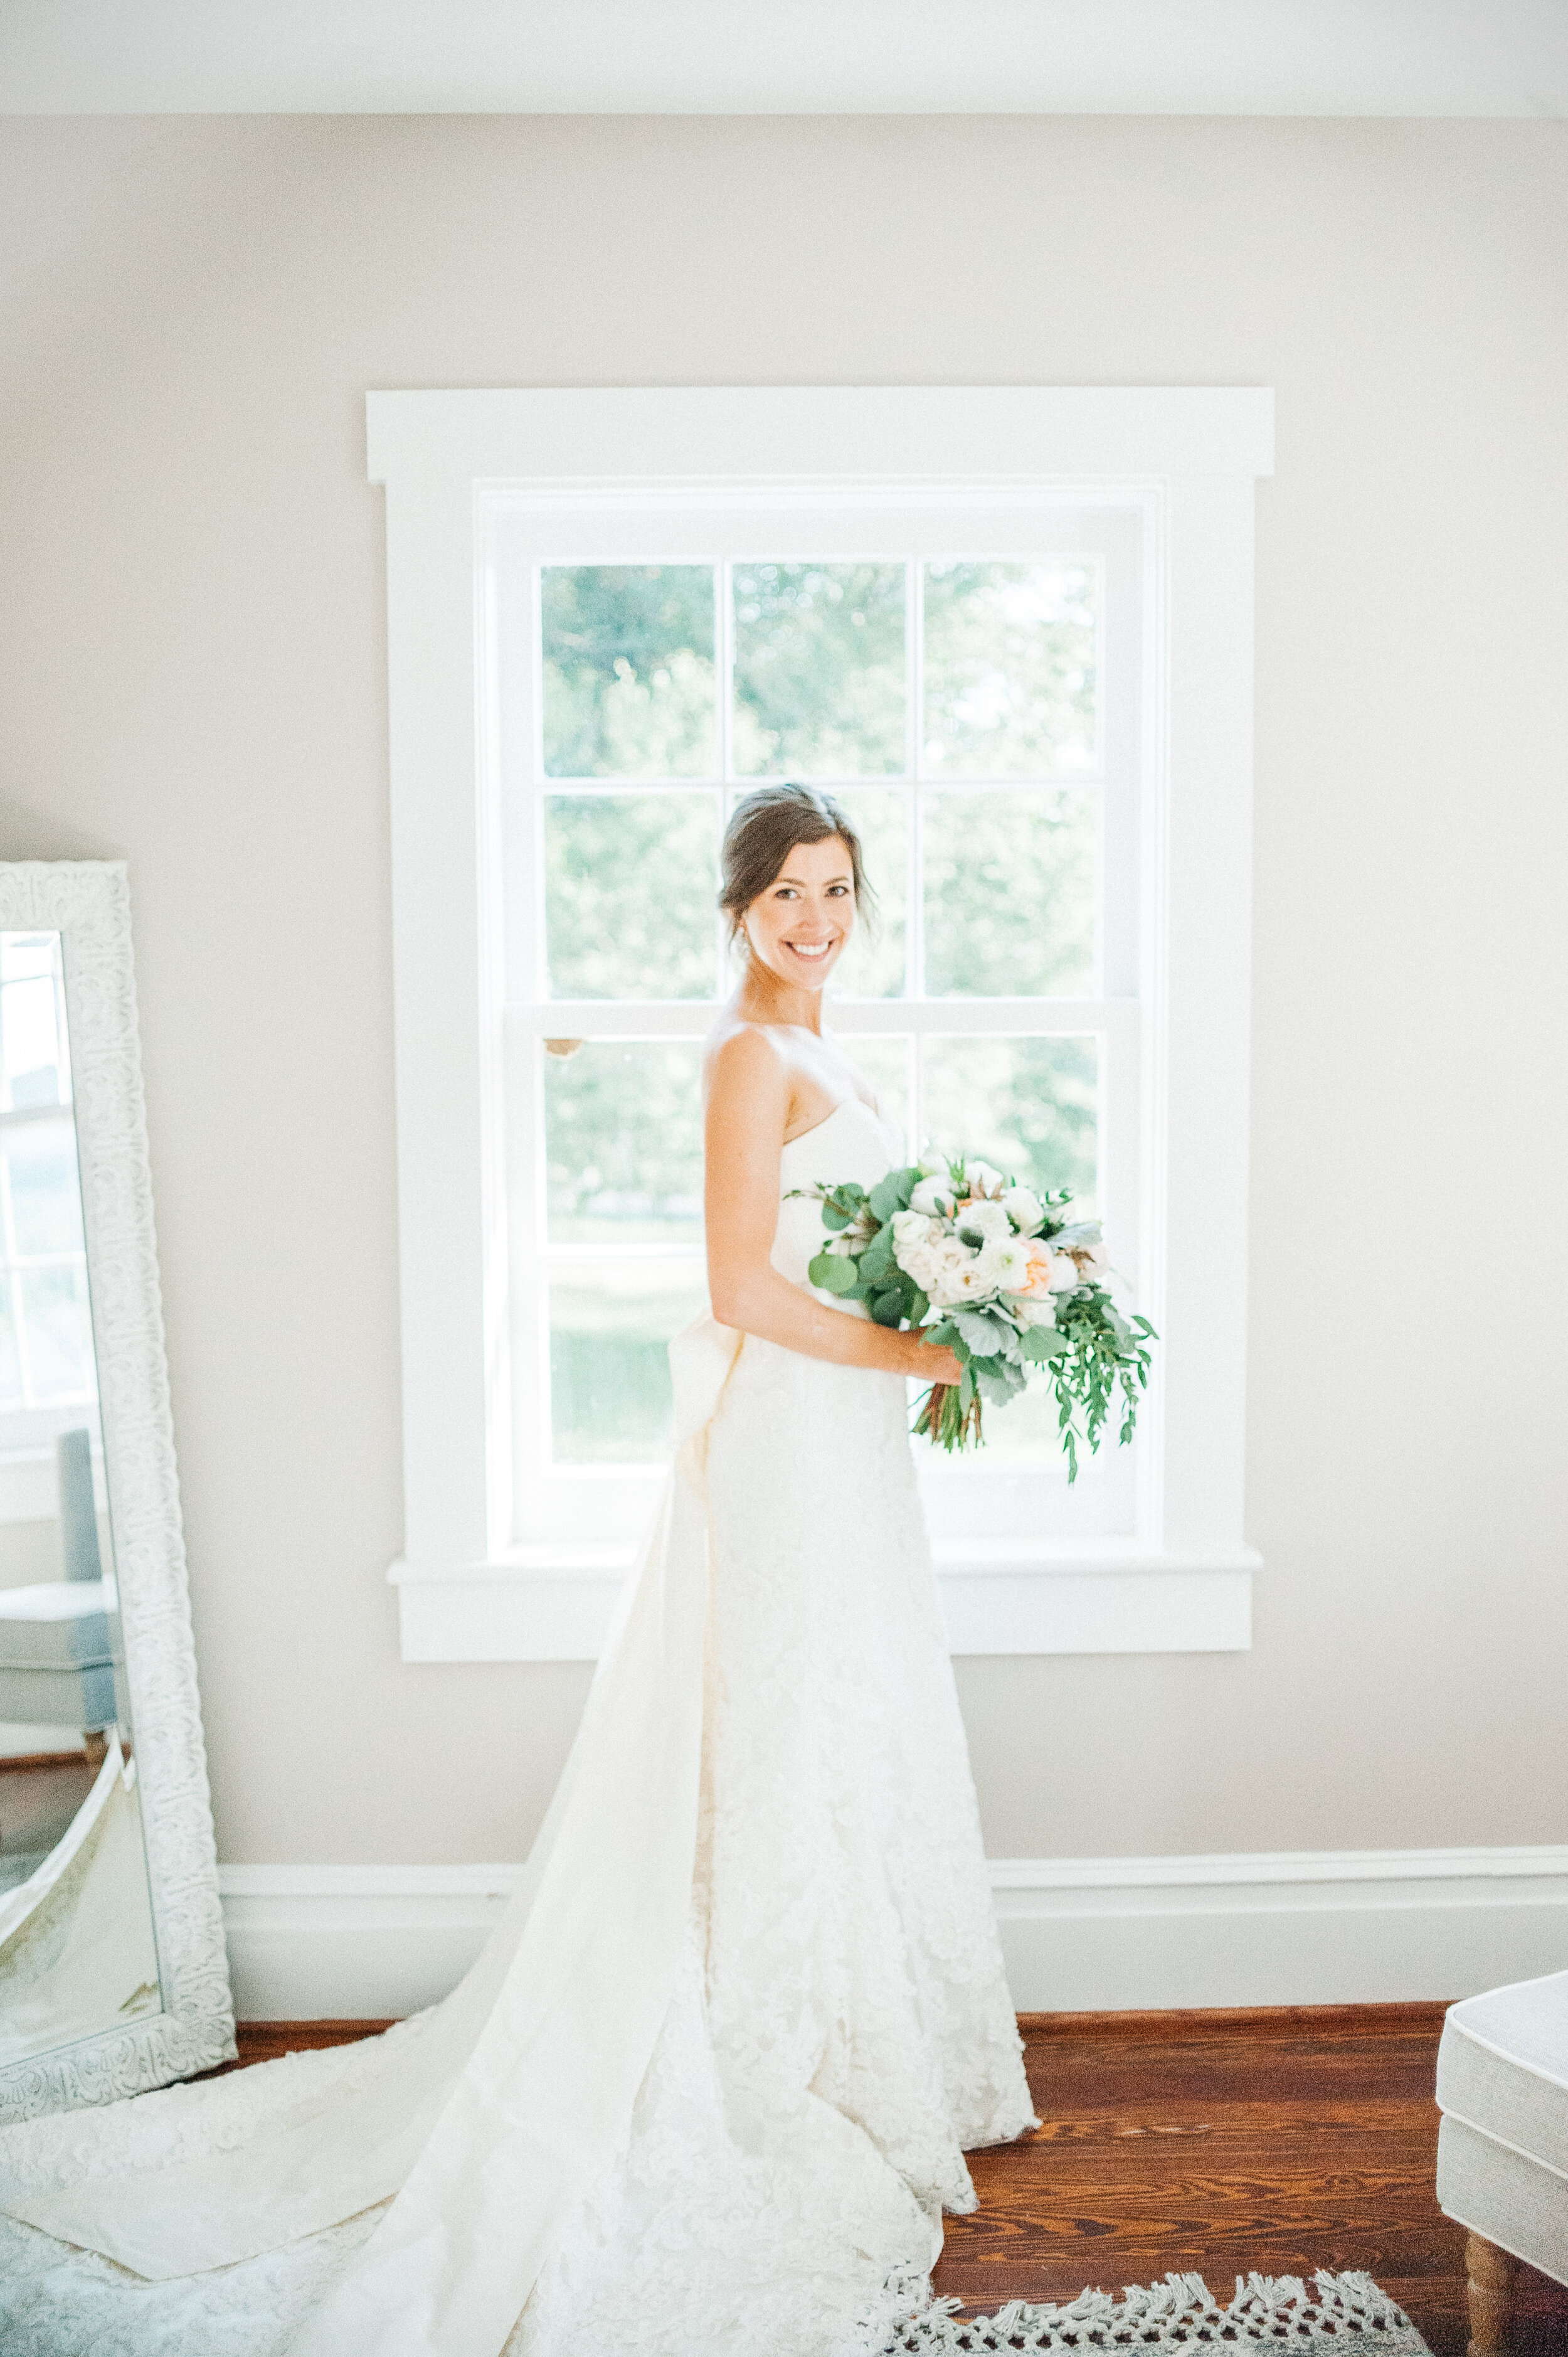 Something Blue - Stephanie was glowing on her big day!The brides maids all wore dresses in a soothing blue color scheme that we are completely in love with.